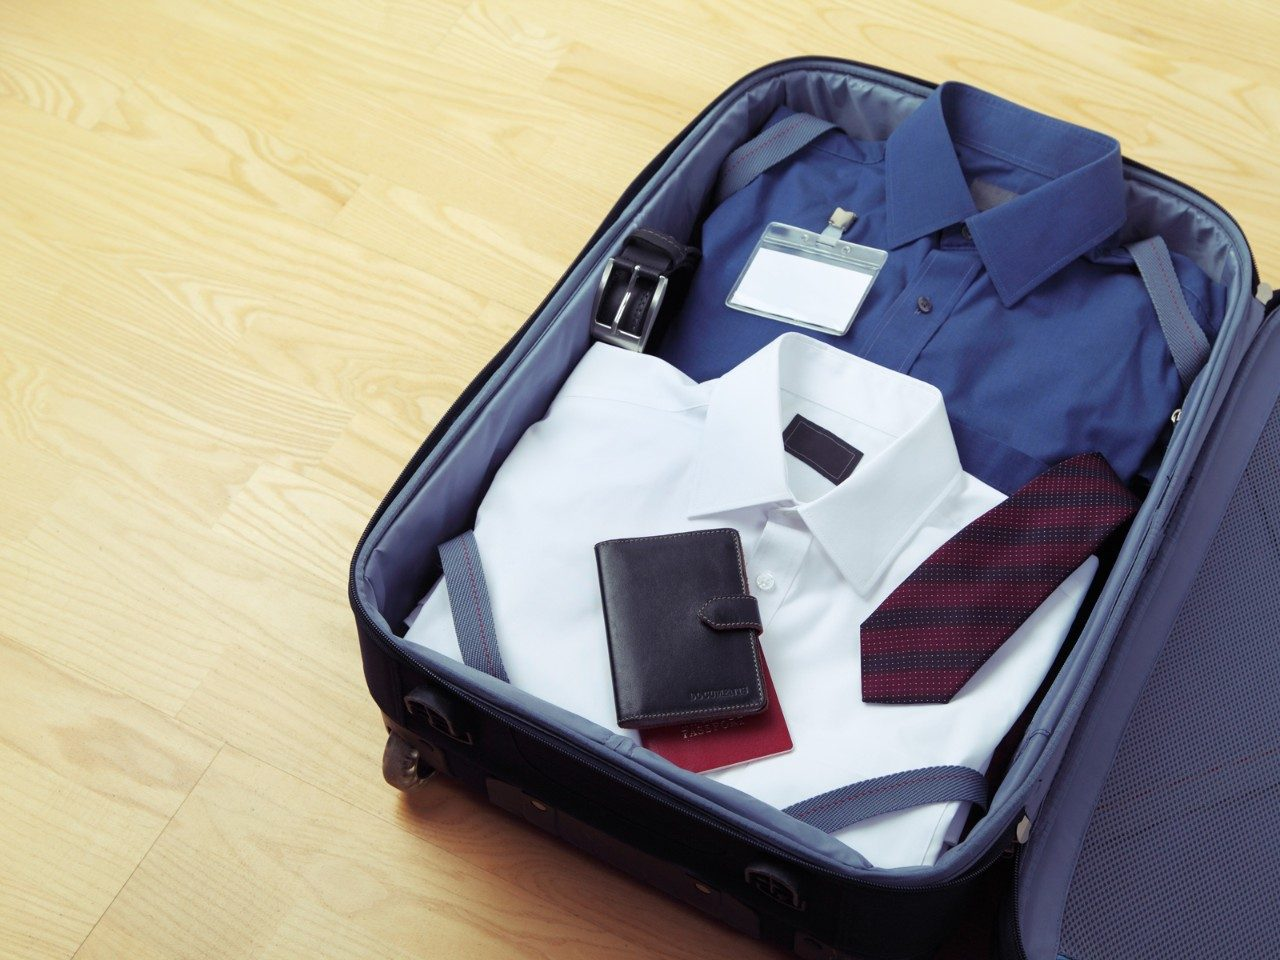 a618e32b37 How to Combine Business and Leisure in One Carry-On